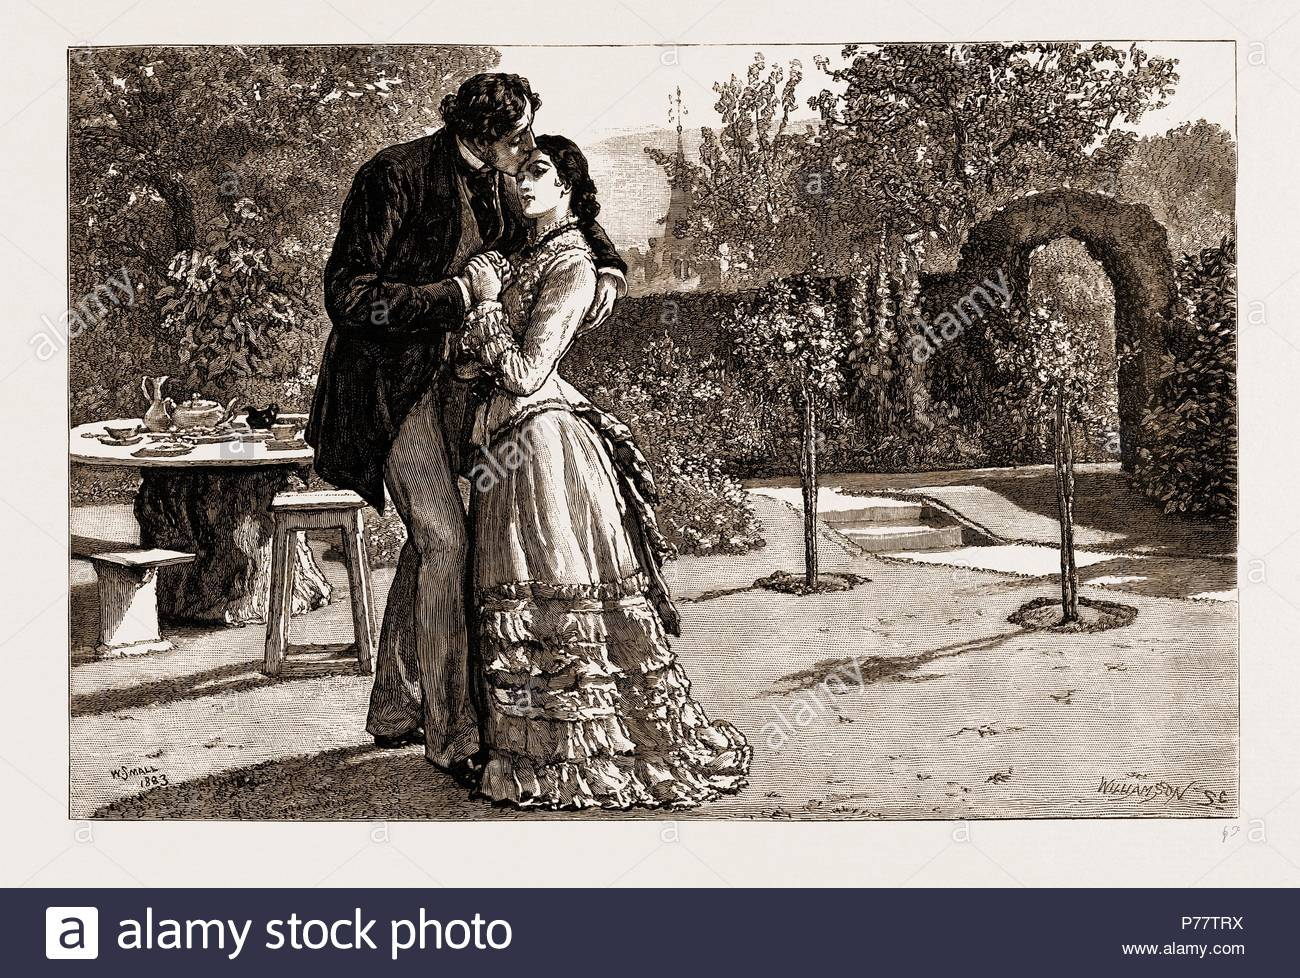 THIRLBY HALL, DRAWN BY WILLIAM SMALL, 1883; Yielding to an uncontrollable impulse, I caught her suddenly in my arms, and kissed her forehead. - Stock Image